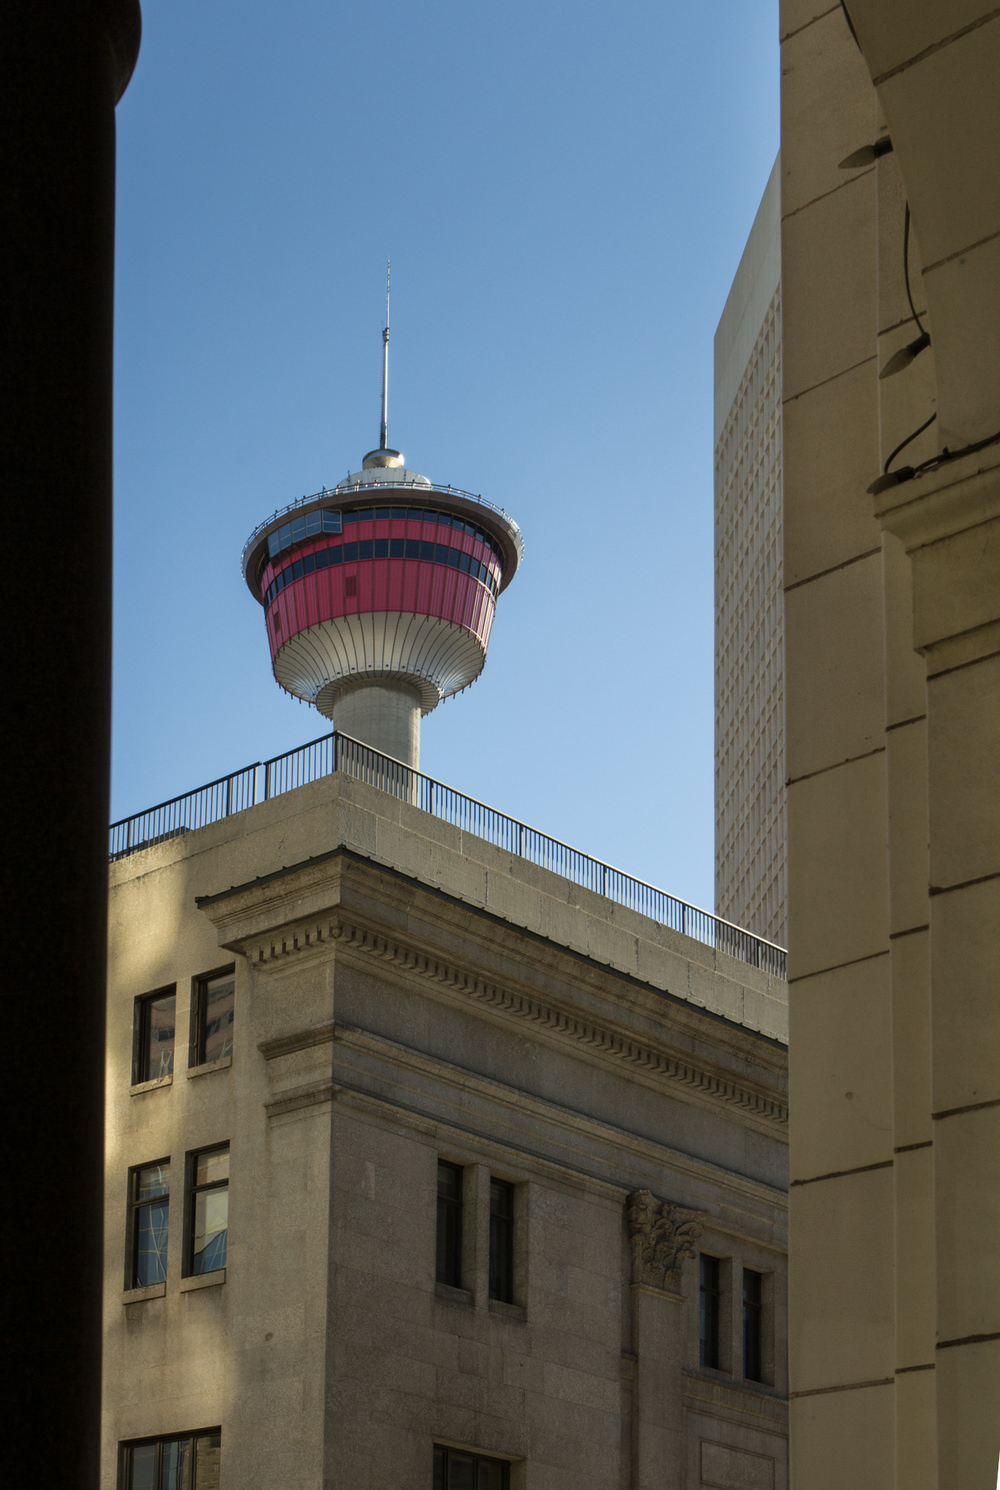 The Calgary Tower as seen through the arcade of a nearby building.